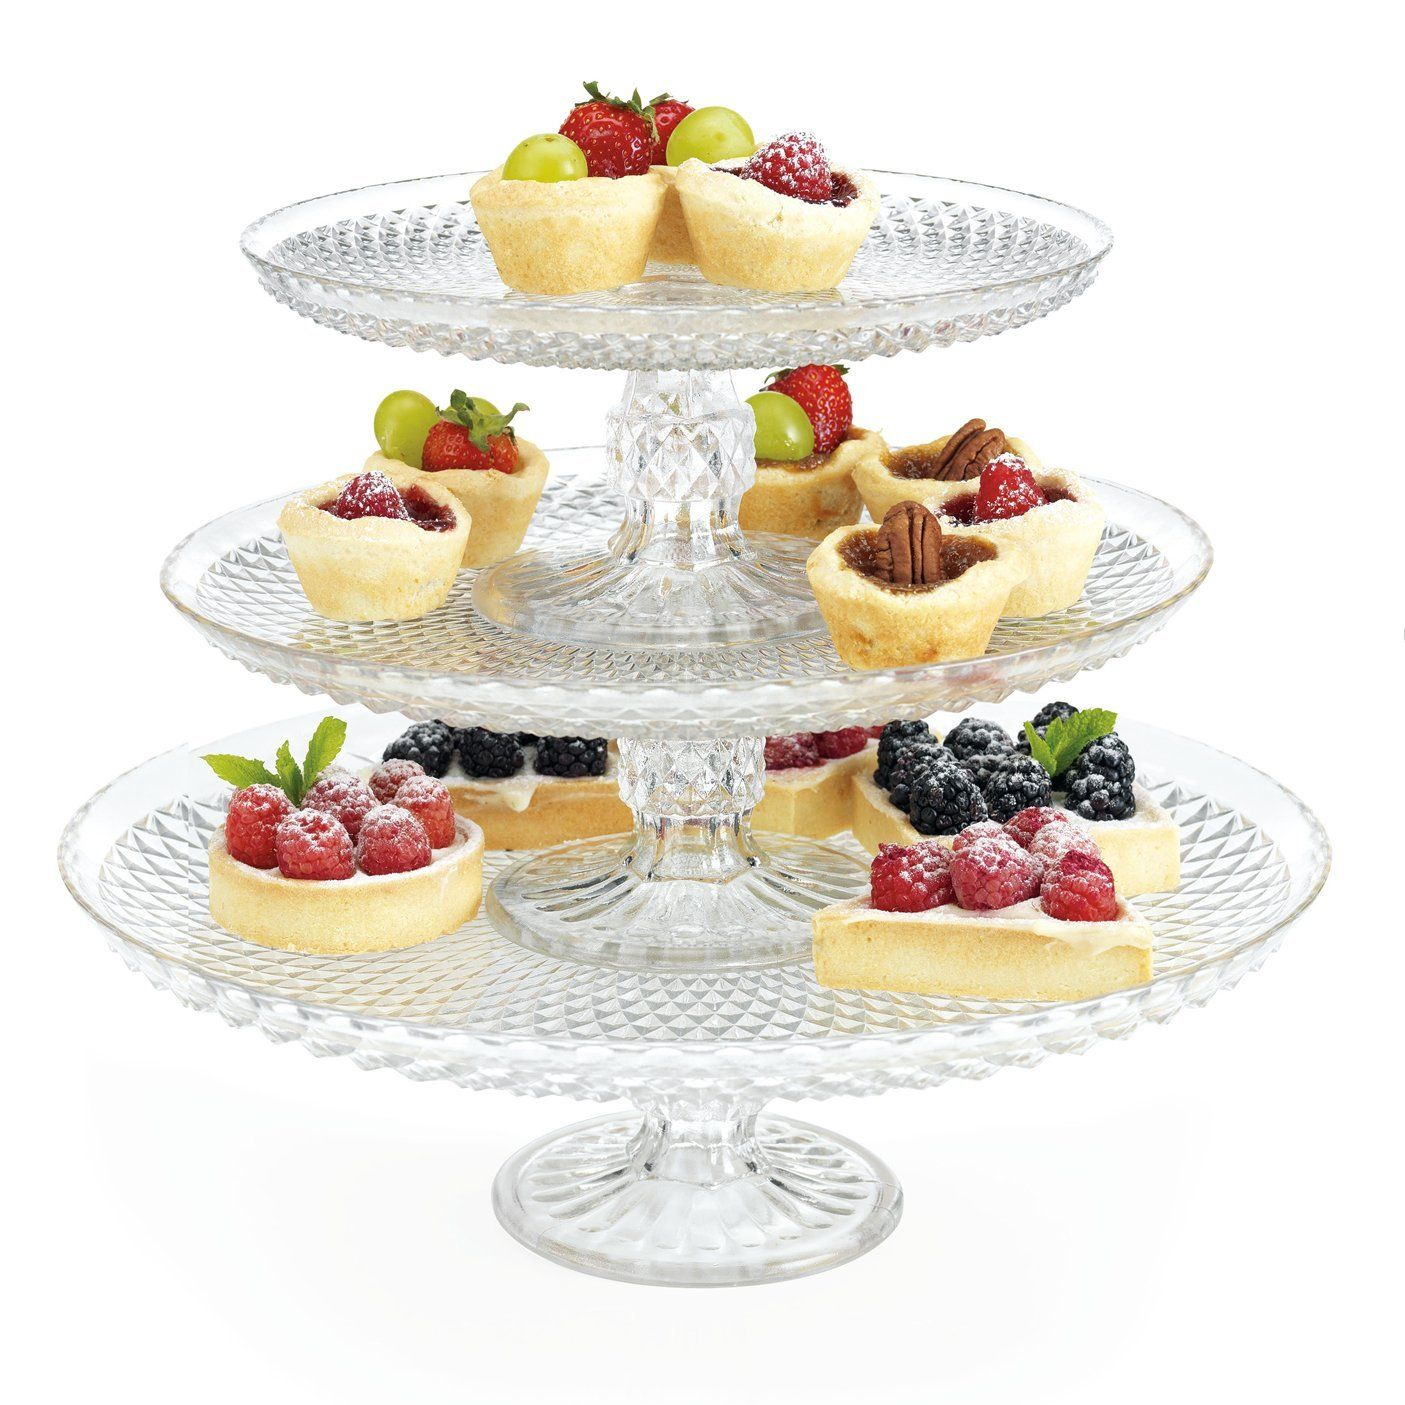 Amazon Com 3 Tier Glass Cake Plate Stand Server Kitchen Dining 47 99 Cake Plates Stand Three Tier Cake Stand Tiered Cake Stand